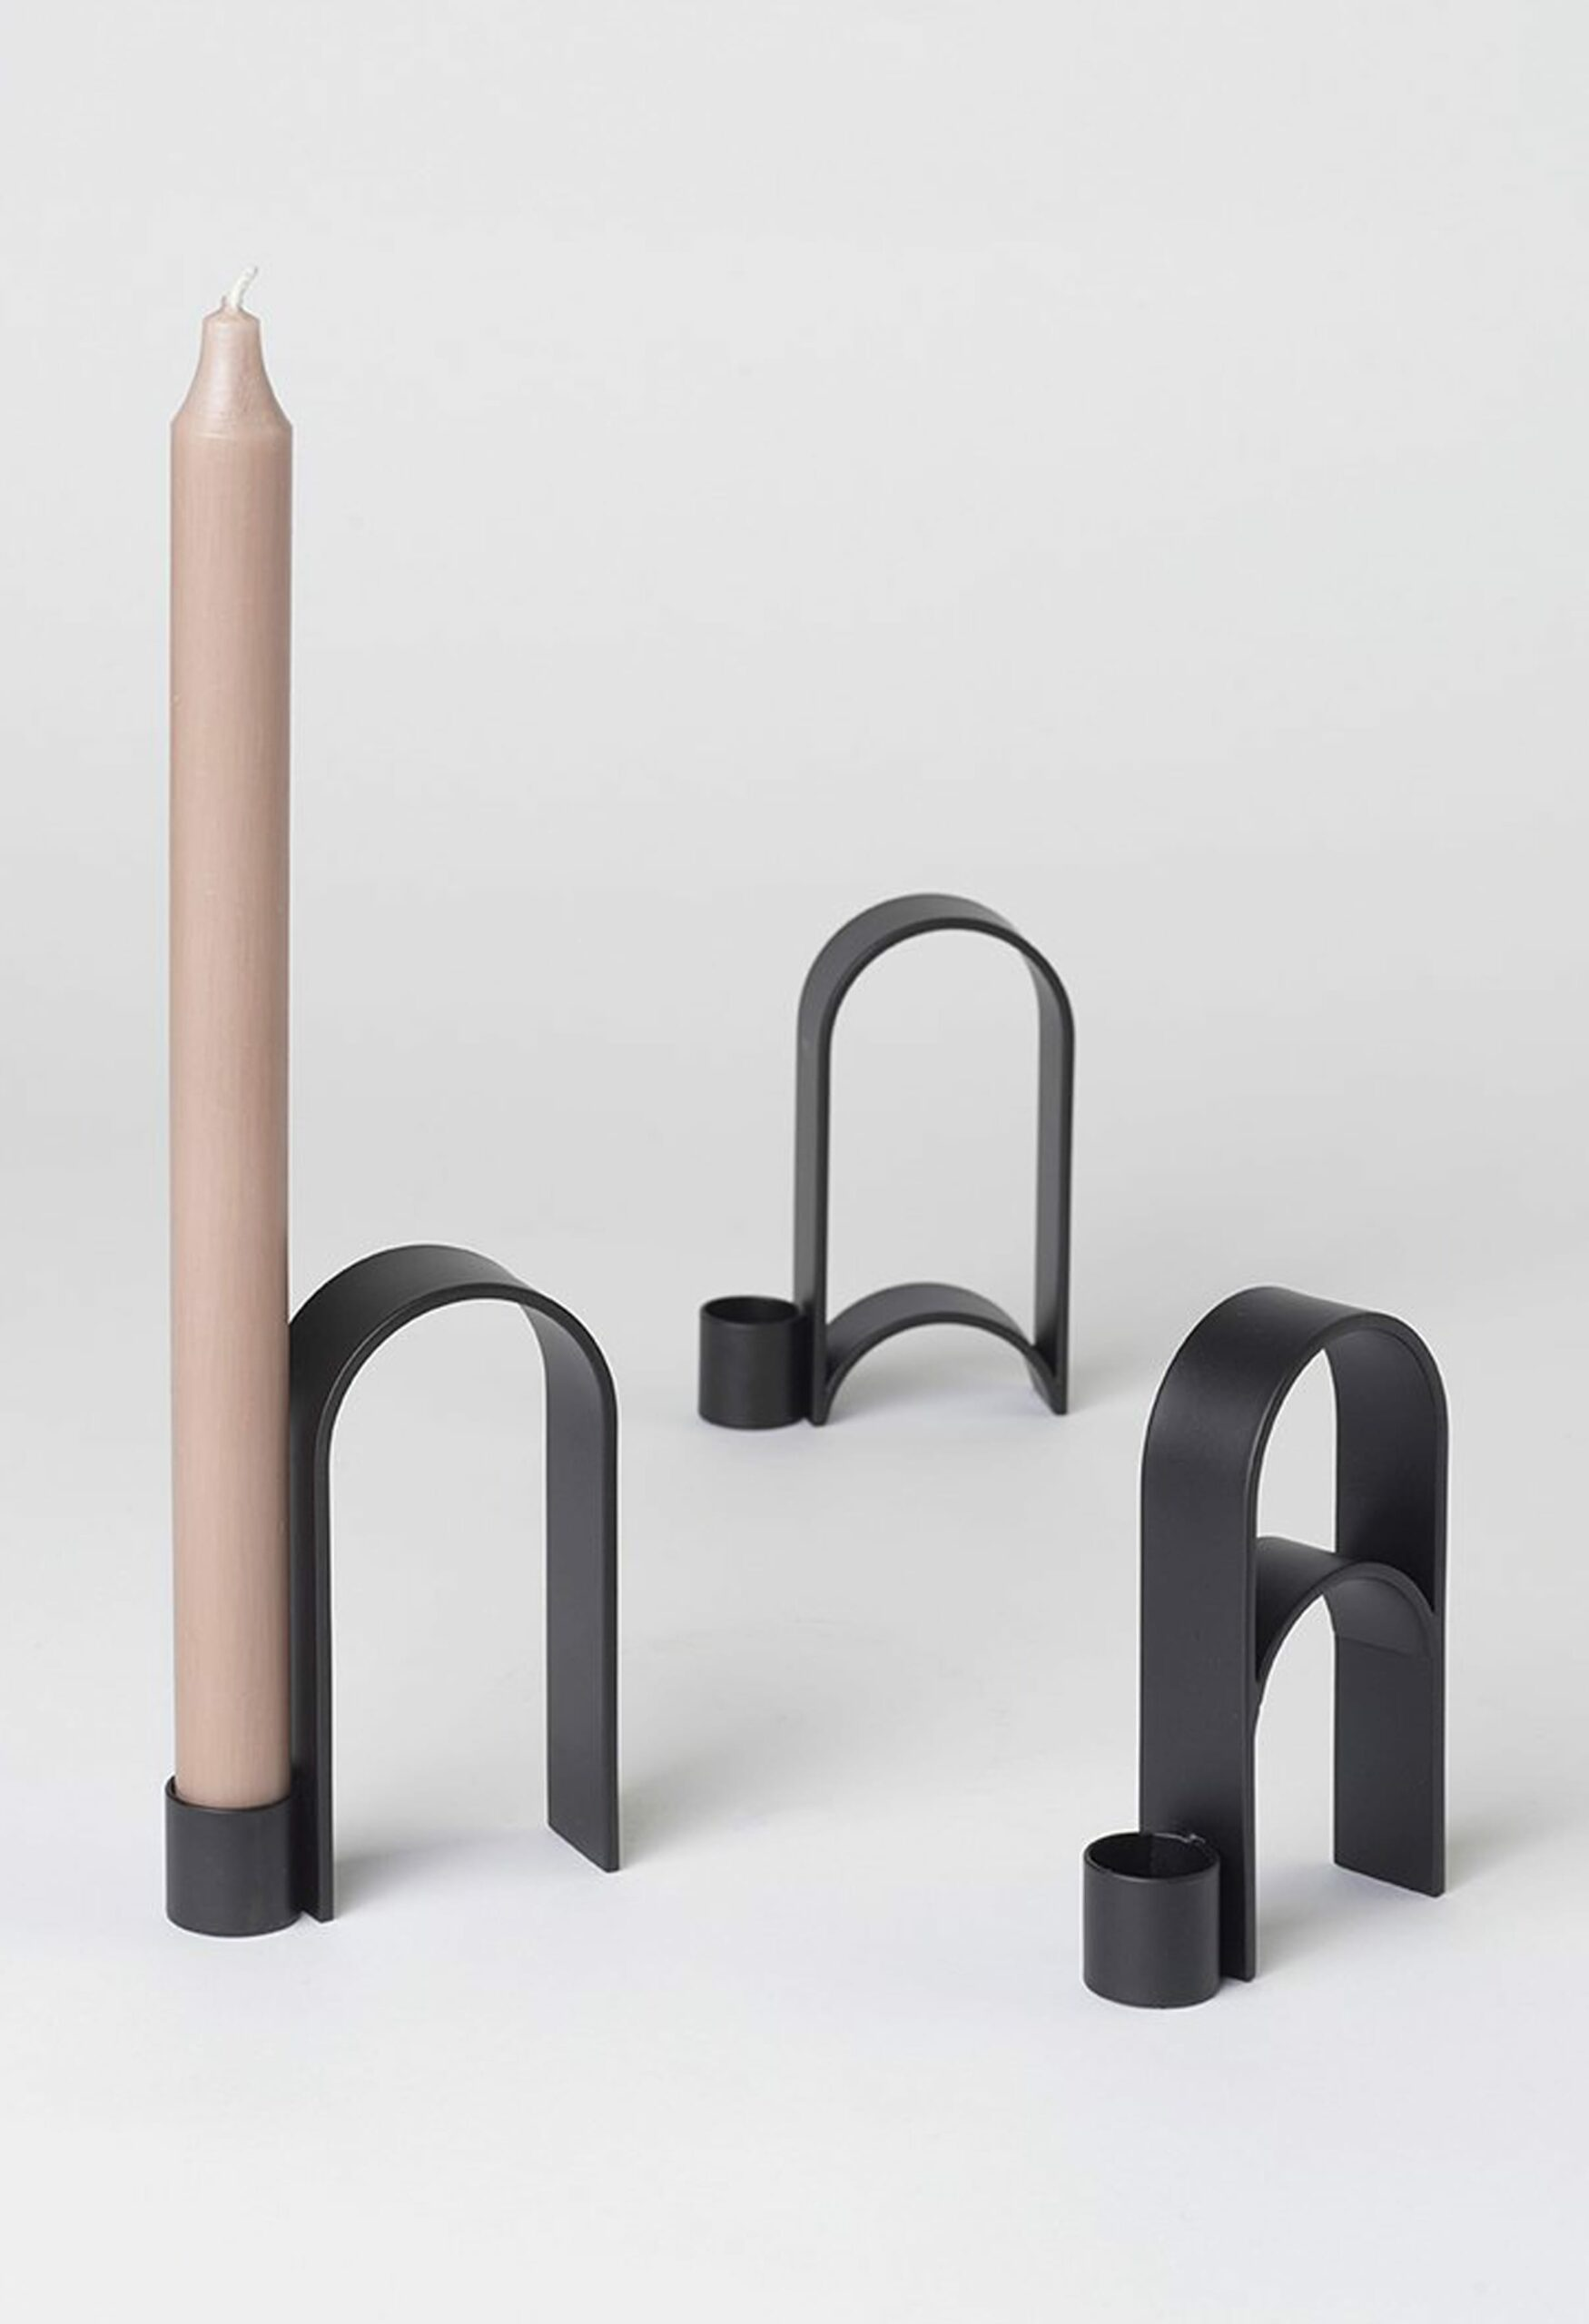 Kristina Dam Studio - Arch Candleholder - Black powder-coated steel - Vol.1